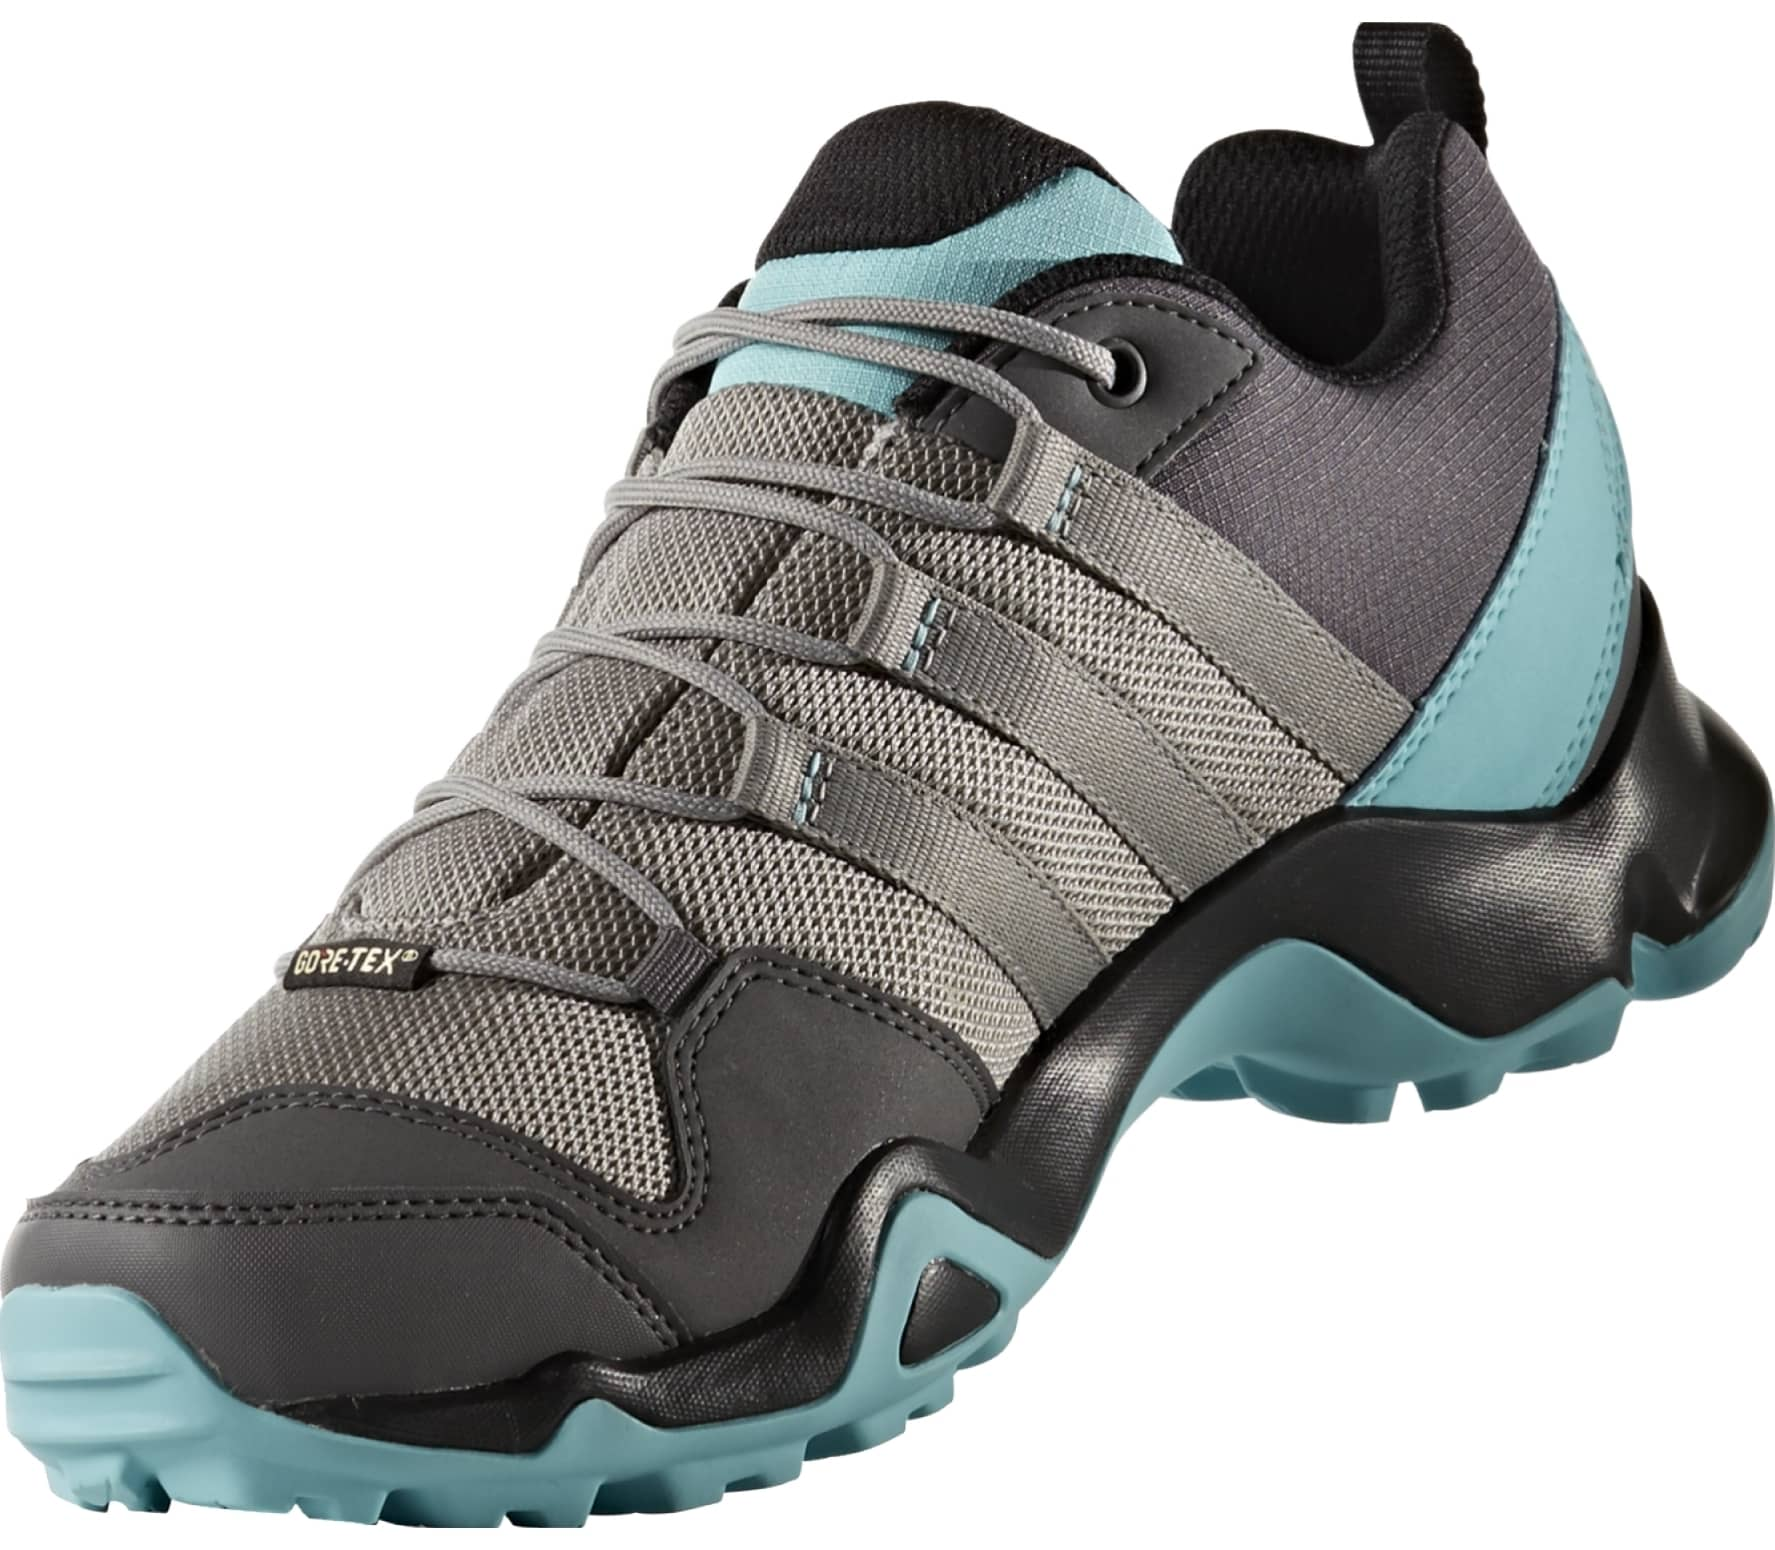 0cea106e Adidas - Terrex Ax2R GTX women's hiking shoes (grey/turquoise)